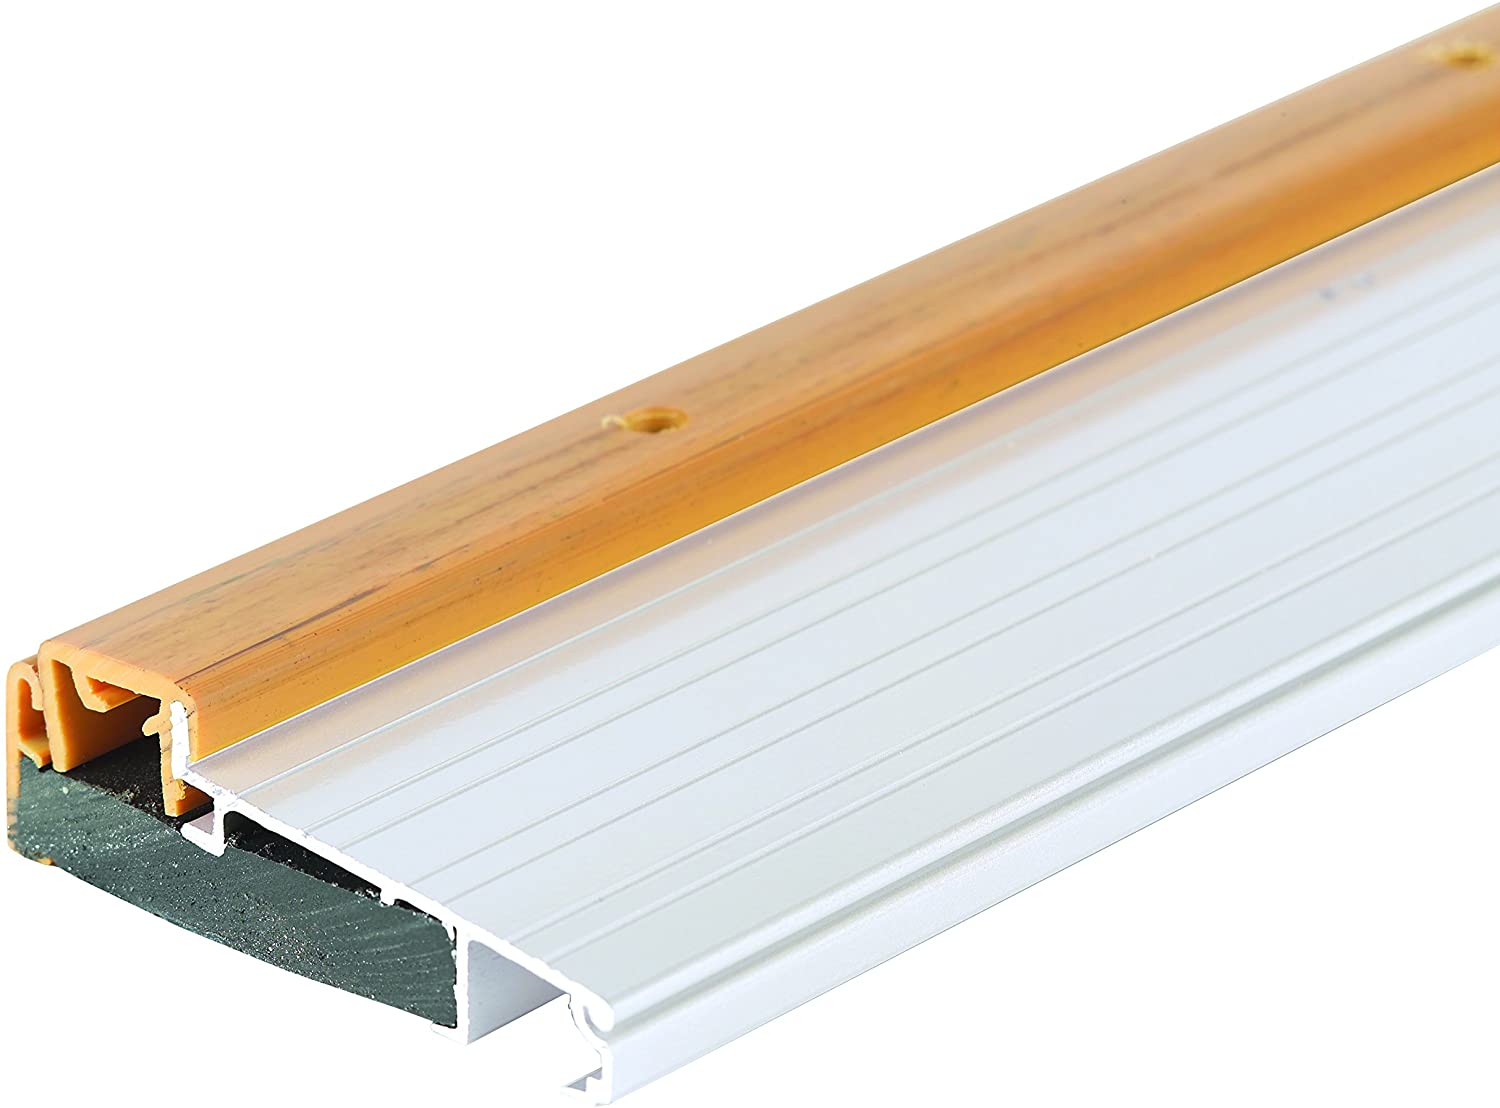 M-D Building Products 43822 M-D Adjustable Thermal Break Threshold, 4-9/16 in W X 1-3/8-1-5/8 in H, 36 L x 4-9/16 W x 1-5/8 H, Aluminum